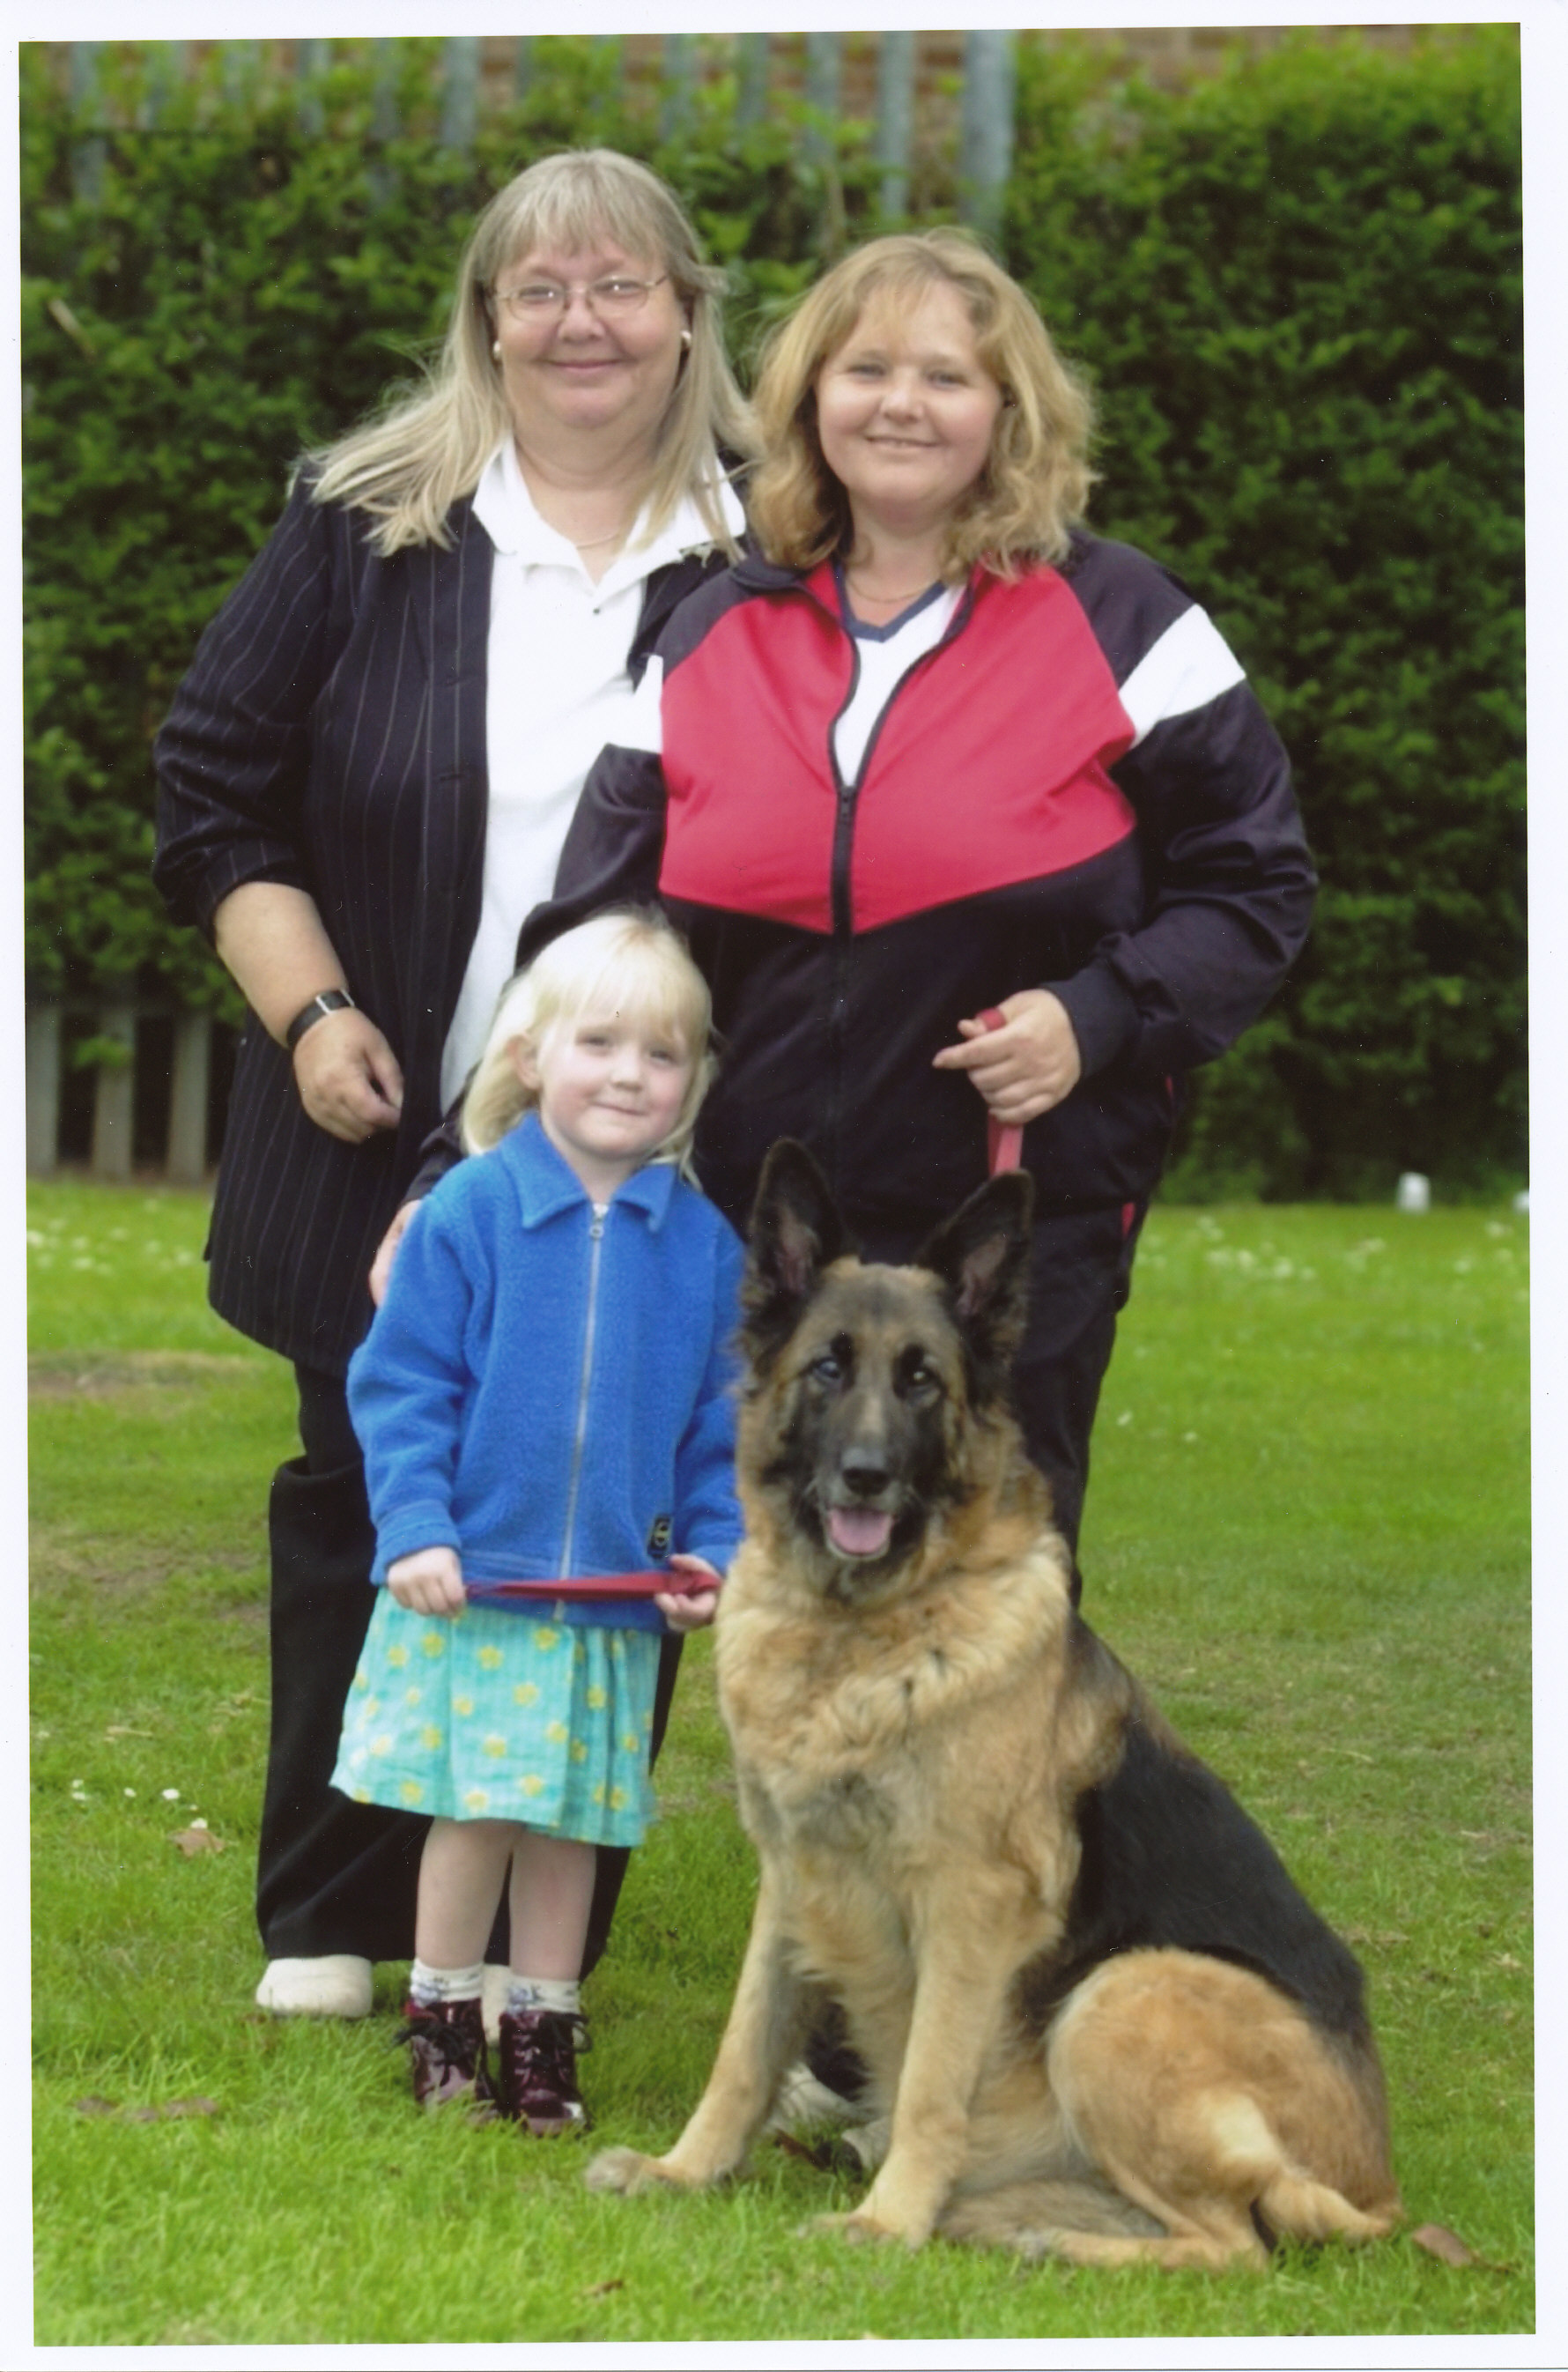 Dog Trainers, Janet Wesley B.I.P.D.T. & Jannet Wesley - Nottingham & Leicestershire, UK